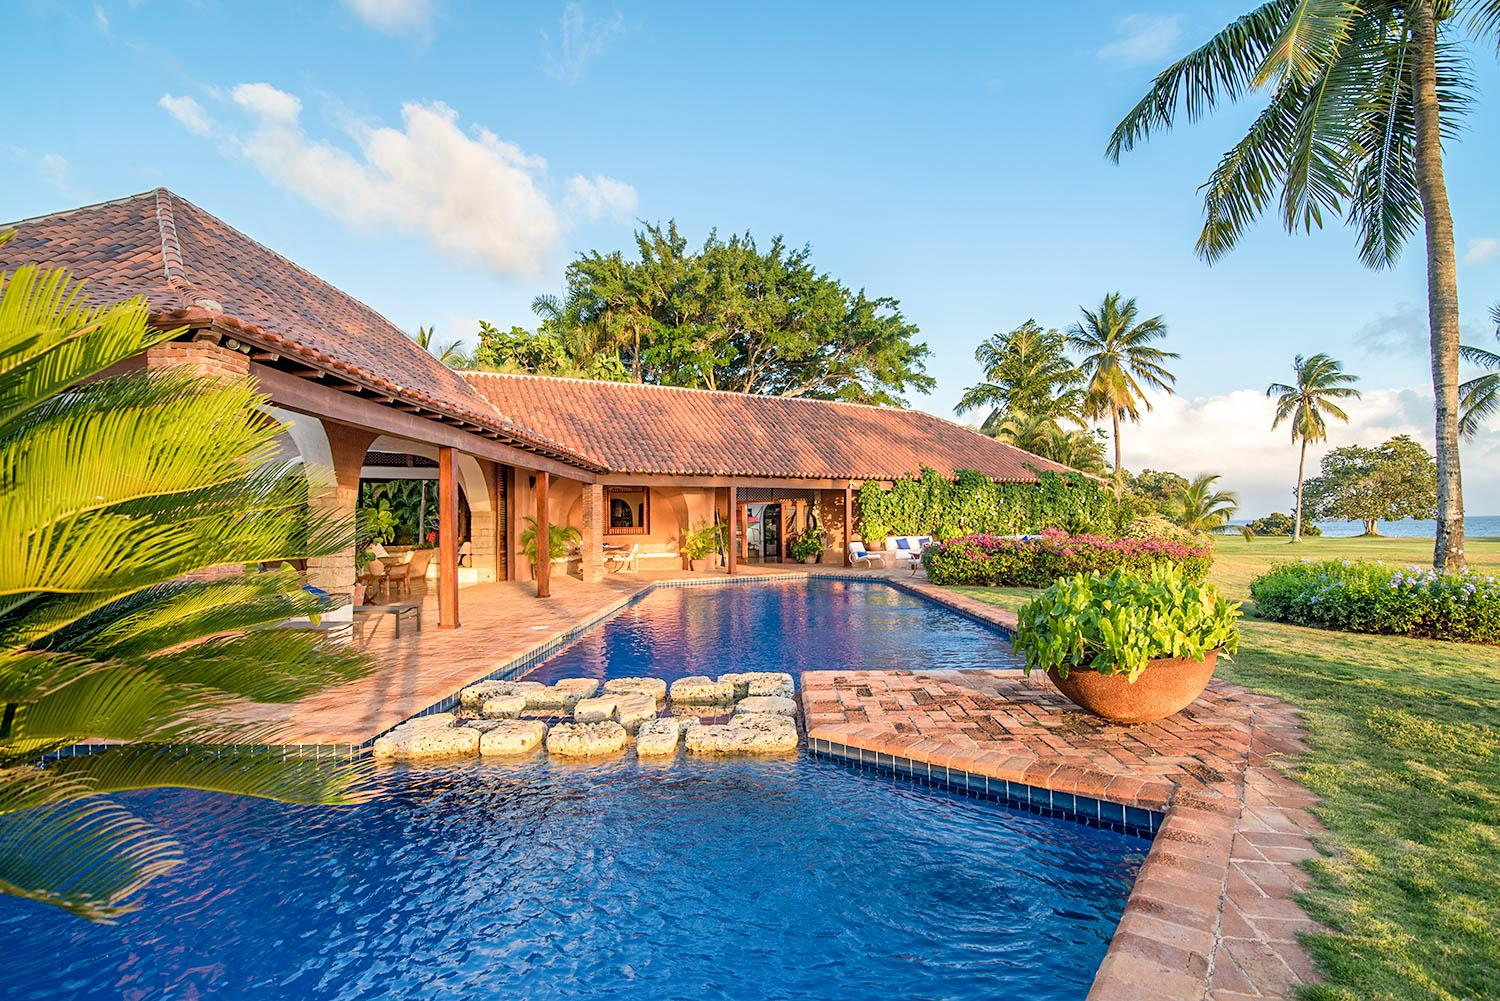 Property Image 1 - Mesmerizing Sea View VIlla with Huge Pool and Jacuzzi